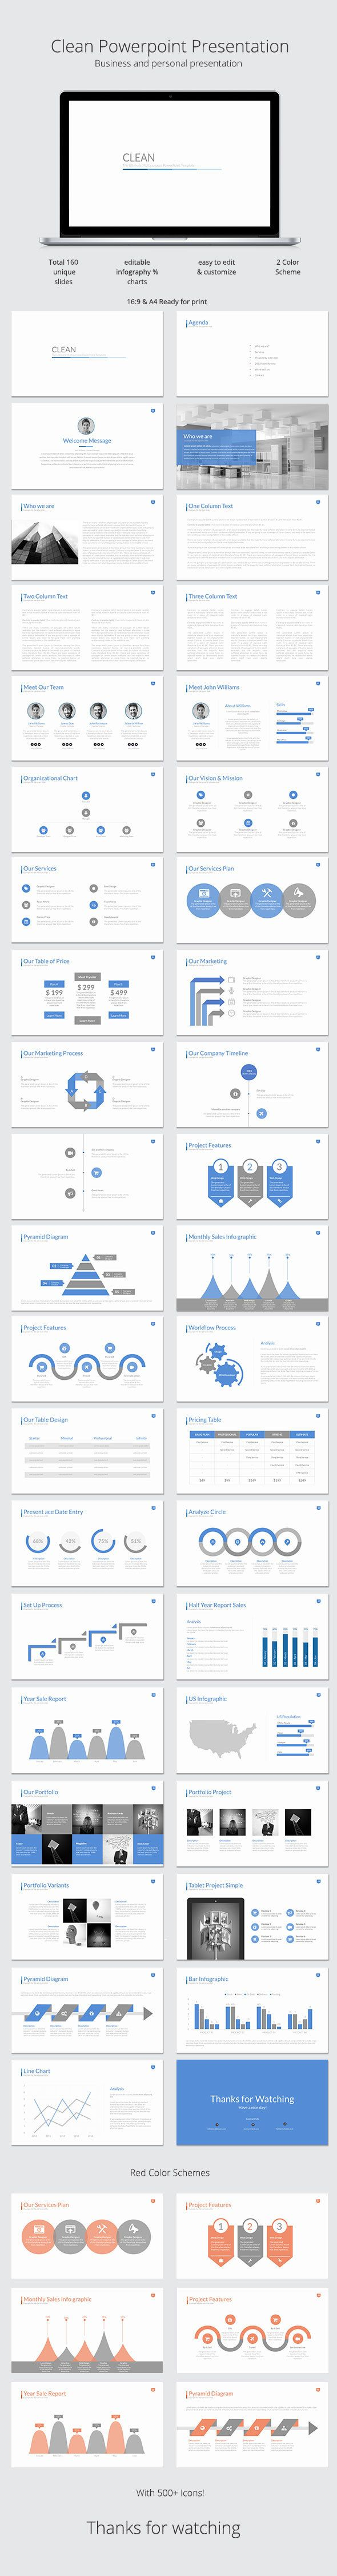 Coolmathgamesus  Sweet  Ideas About Powerpoint Presentations On Pinterest With Lovely Clean Powerpoint Template With Breathtaking Design Powerpoint Template Also Simple And Compound Sentences Powerpoint In Addition Evaluate A Casualty Powerpoint And Songs For Powerpoint As Well As Case Study Powerpoint Template Additionally Fables Powerpoint From Pinterestcom With Coolmathgamesus  Lovely  Ideas About Powerpoint Presentations On Pinterest With Breathtaking Clean Powerpoint Template And Sweet Design Powerpoint Template Also Simple And Compound Sentences Powerpoint In Addition Evaluate A Casualty Powerpoint From Pinterestcom